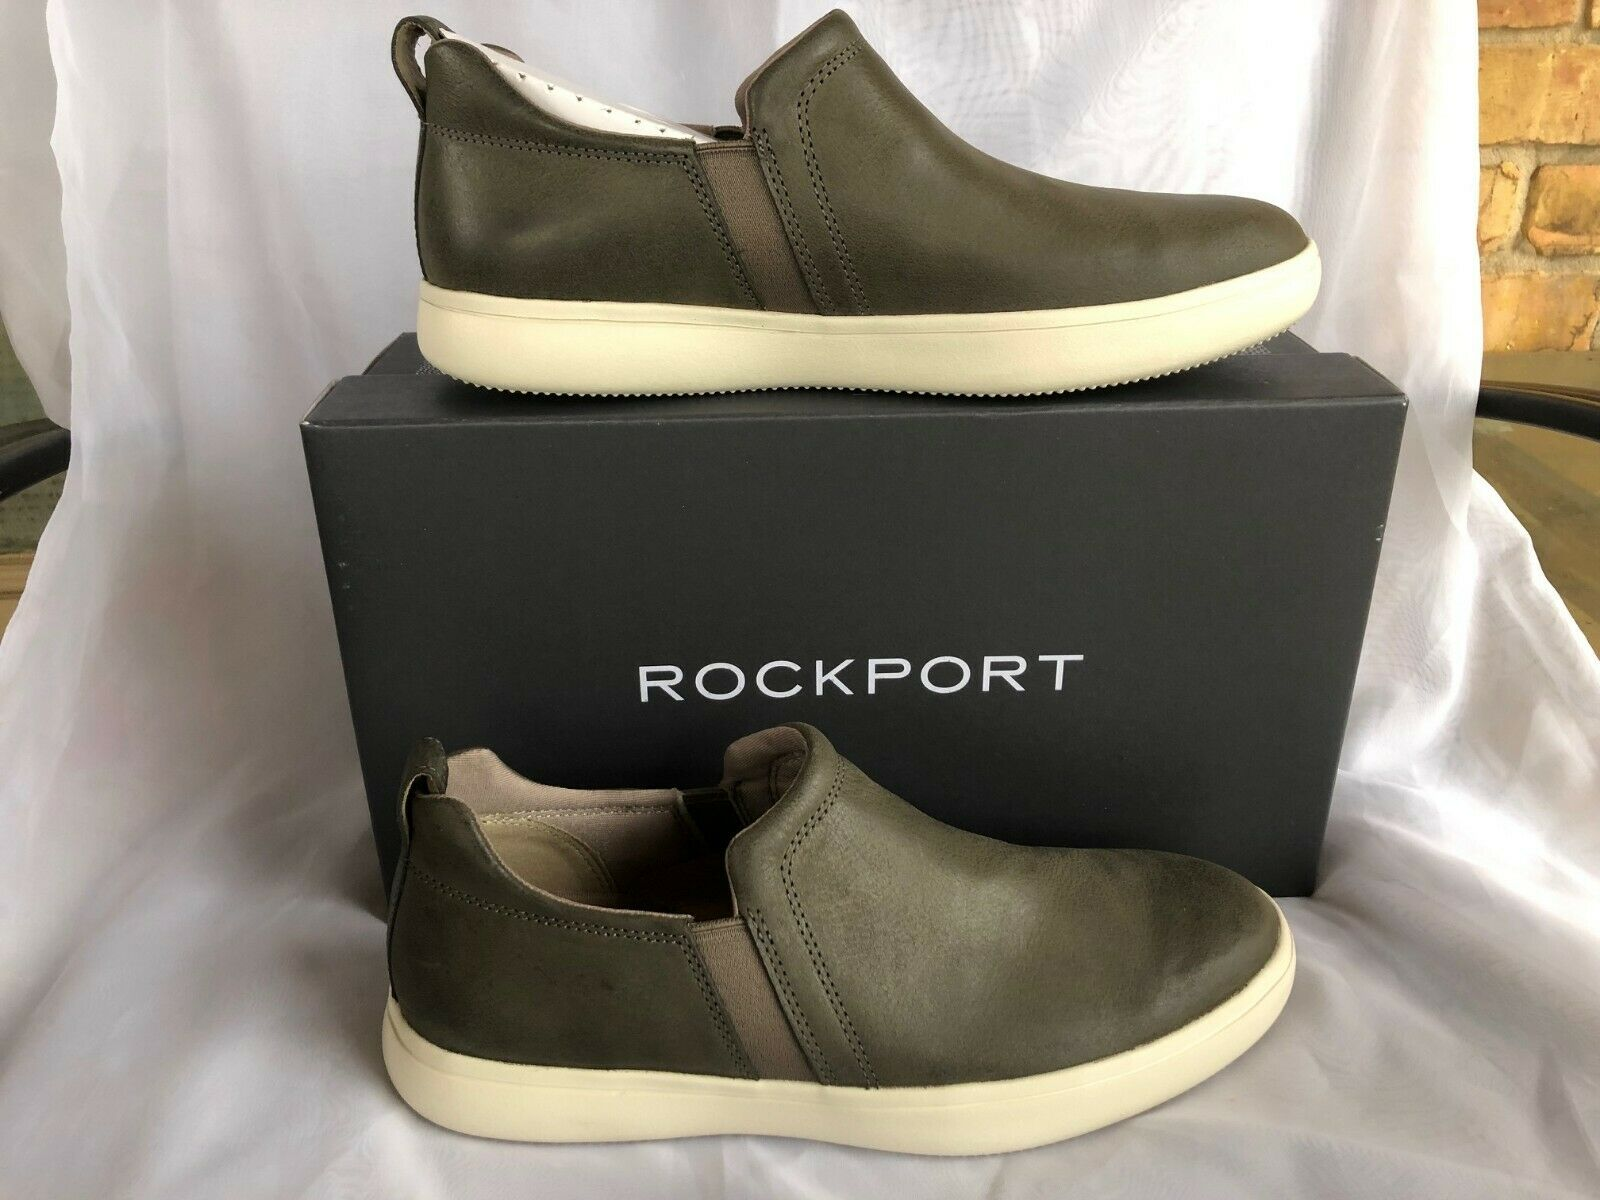 NIB Rockport Men's Colle Twin Gore Leather Sneaker shoes Gift size 9.5M